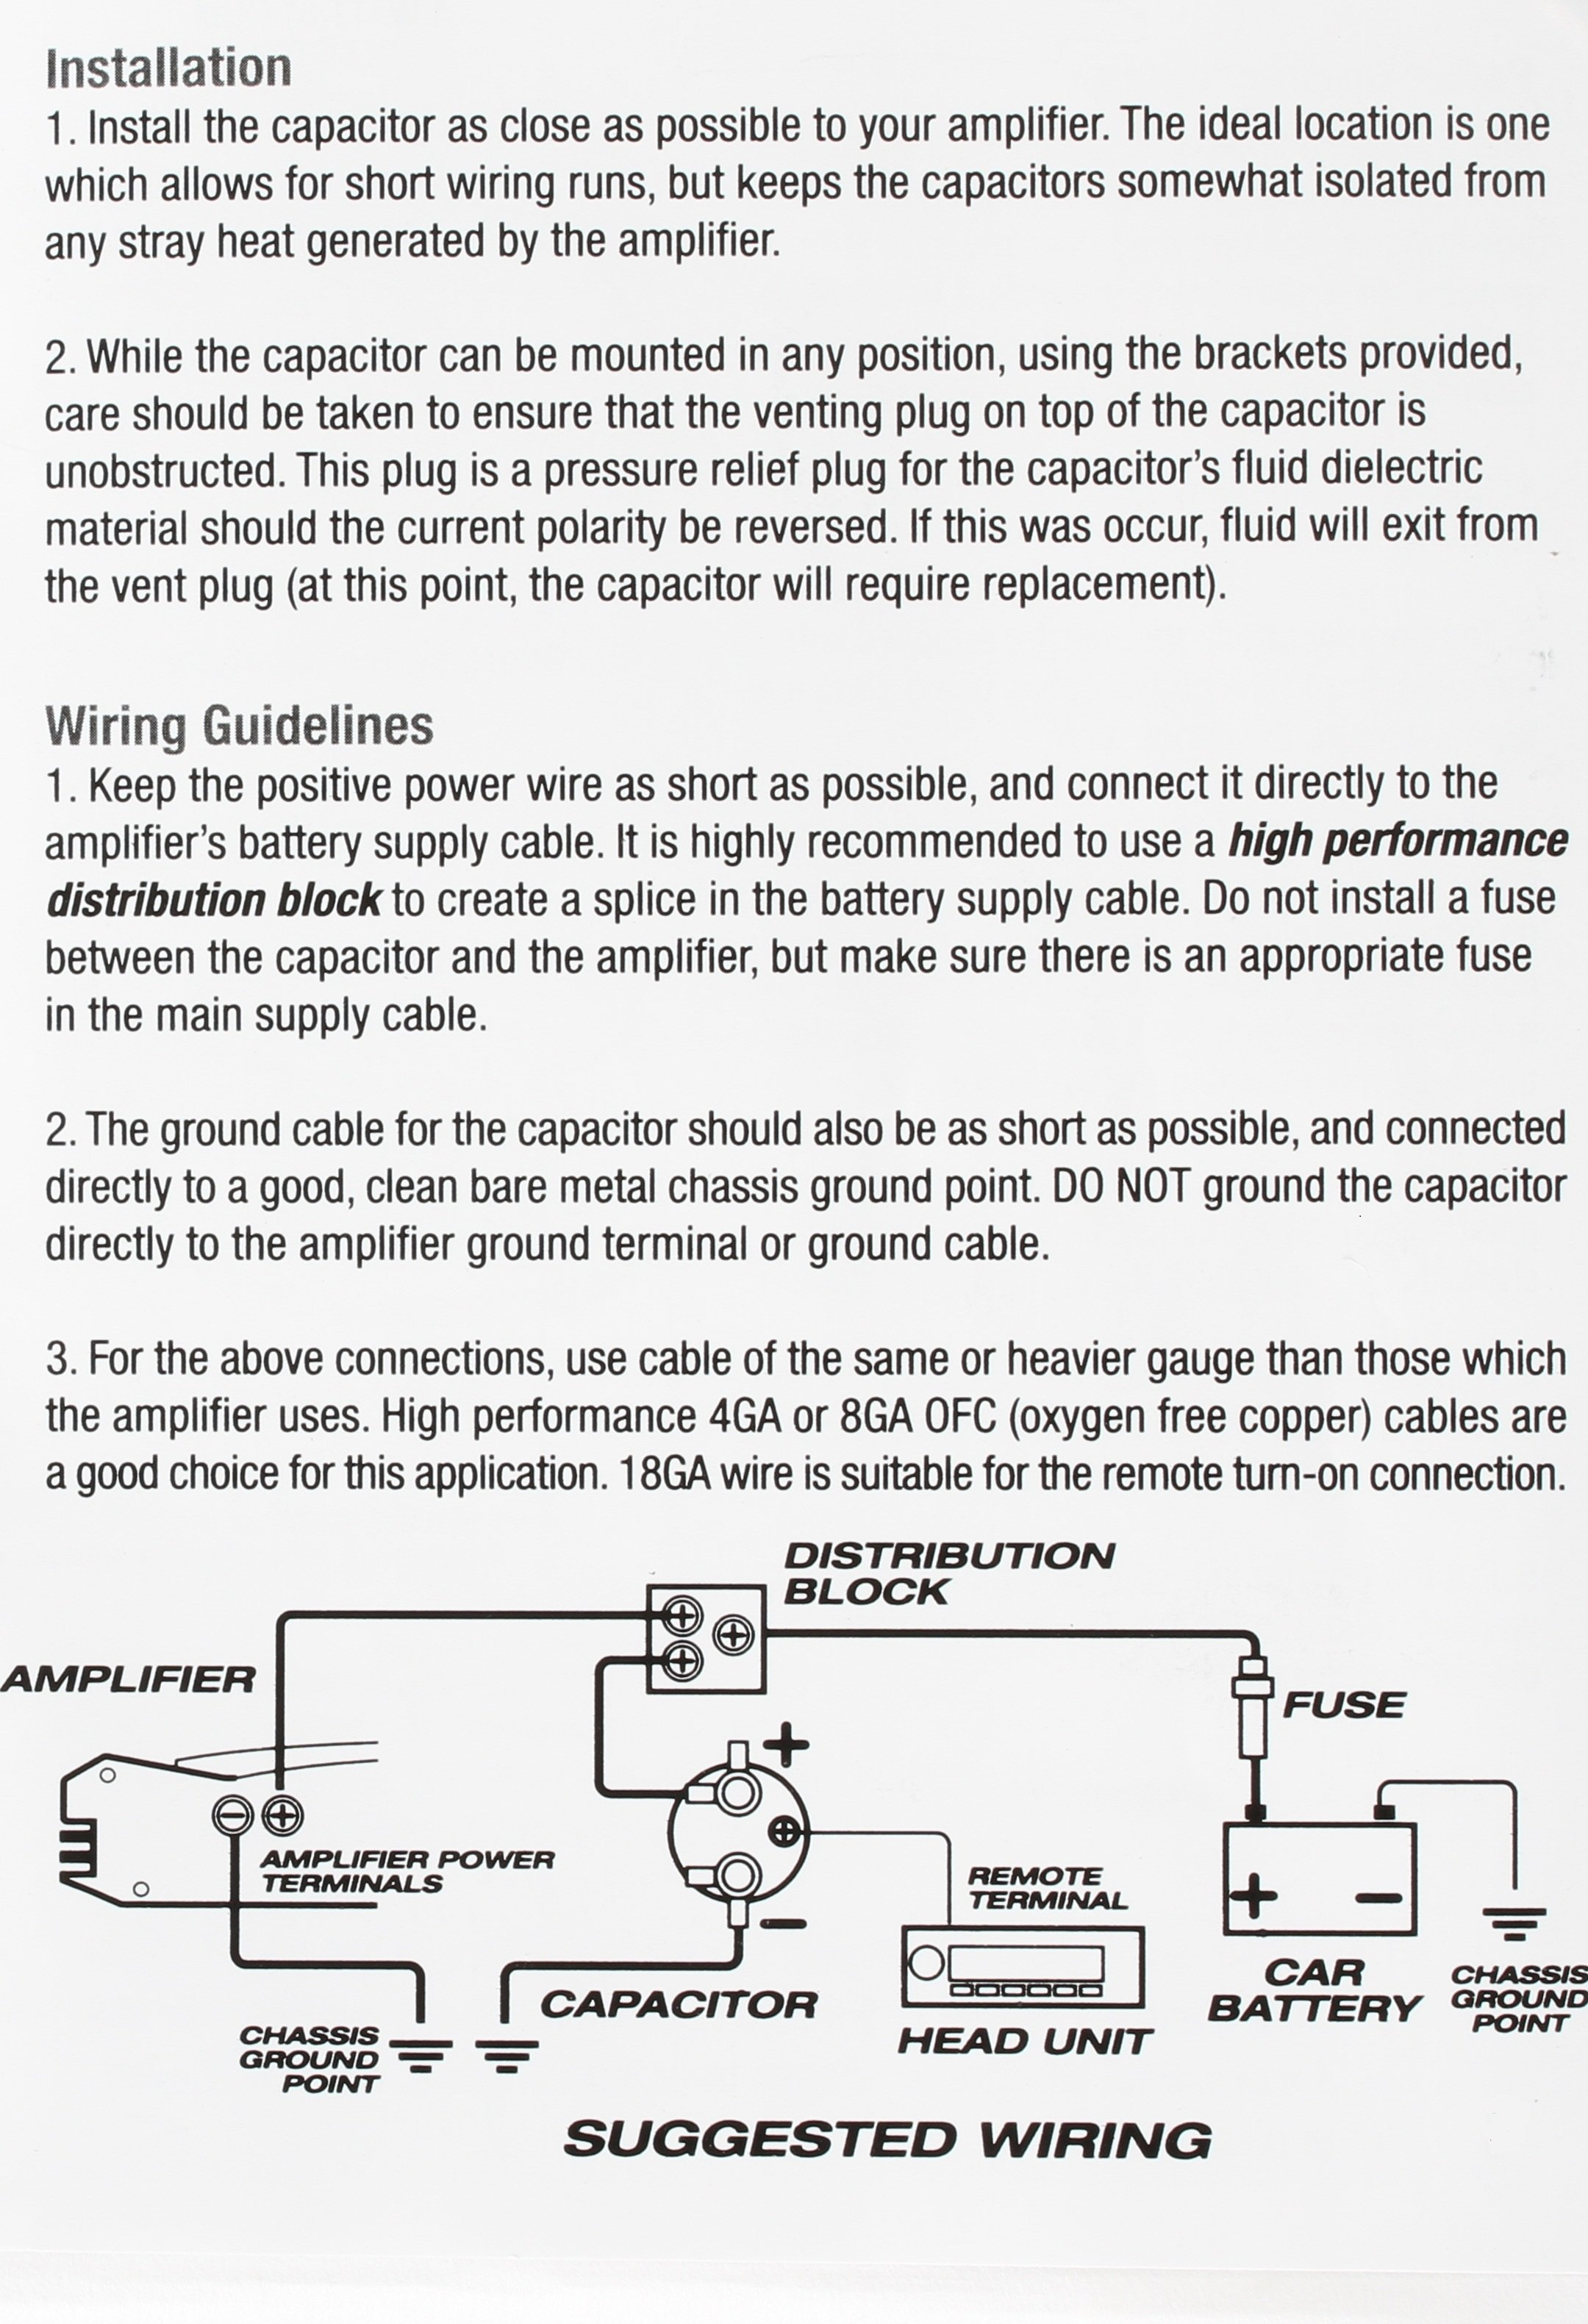 How To Install Car Audio Capacitors Manual Guide